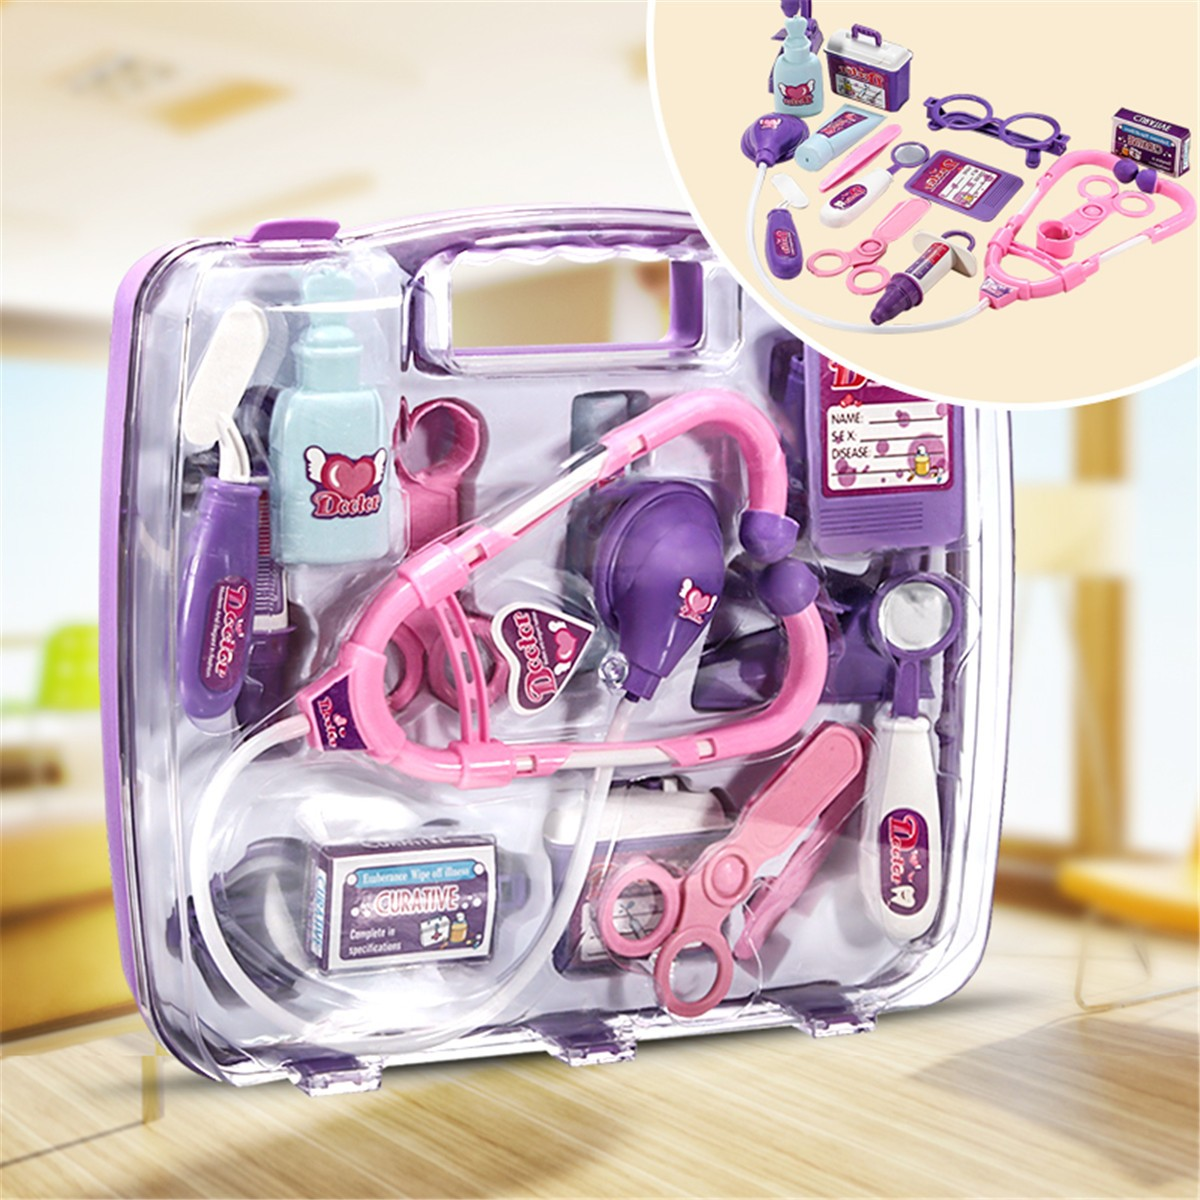 Kids Pretending Doctor's Medical Playing Set Case Education Kit Boys Girls Toy Image 1 of 12